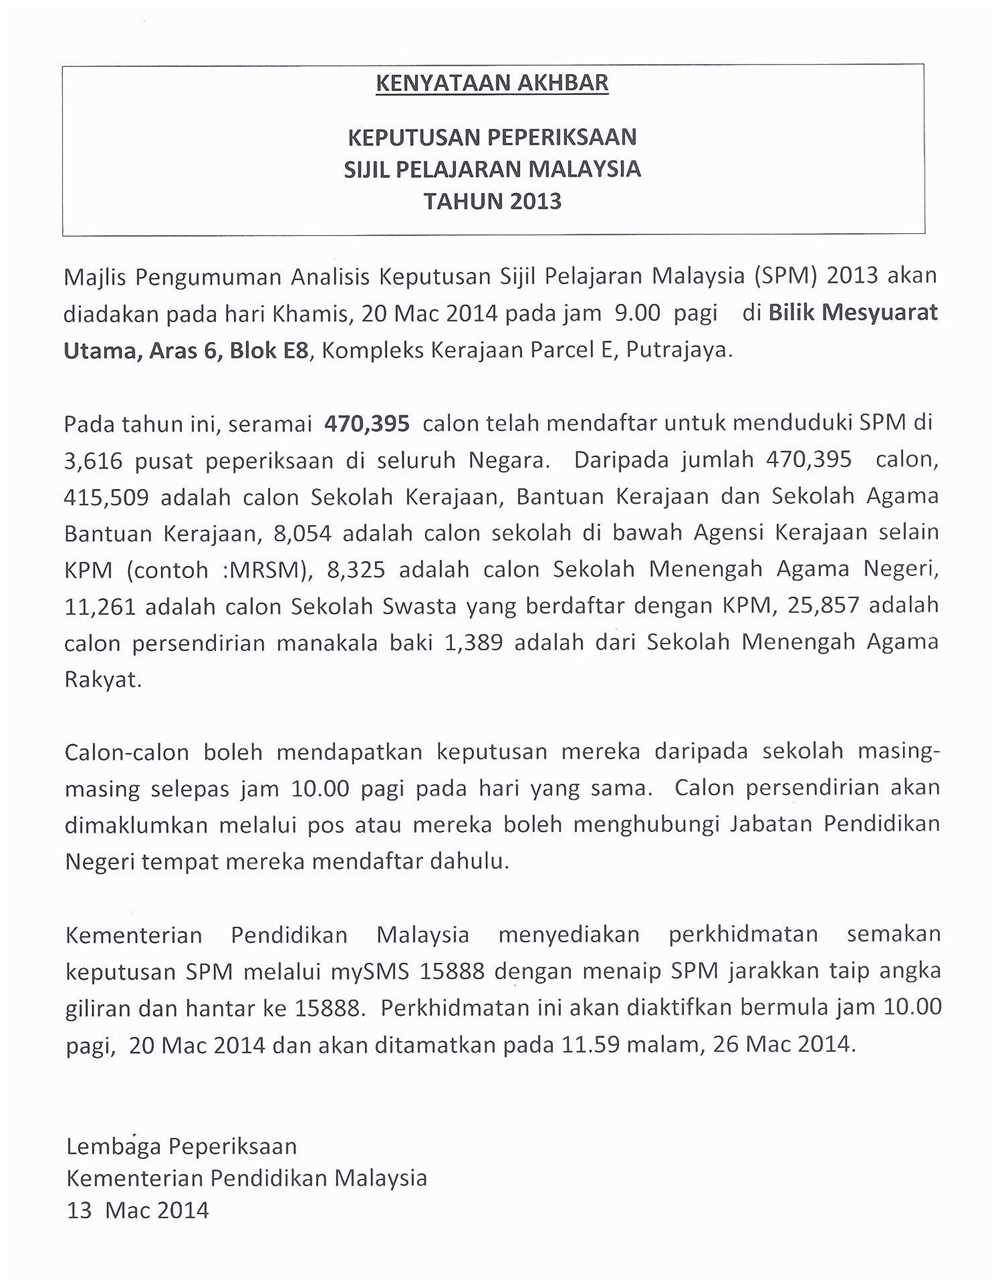 spm 2013 results to be released on march 20 2014 confirmed best advise information on courses at malaysia s top private universities and colleges eduspiral represents top private universities in malaysia eduspiral represents top private universities in malaysia